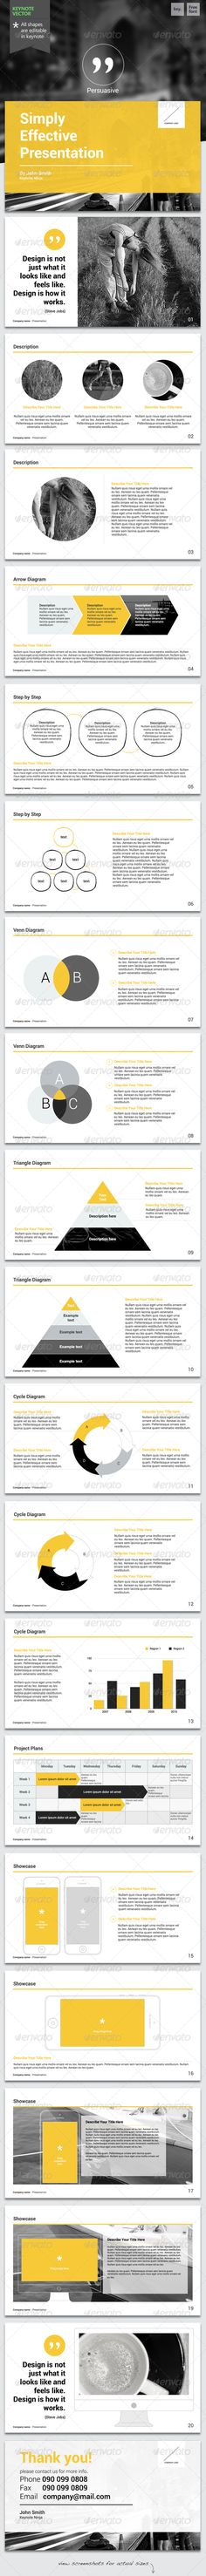 Persuasive - Keynote Presentation | Keynote theme / template  #photograhy #custom #quote #presentation elements. #powerpoint #keynote #ideas #tips #help #design #nice #beautiful #graphs #graphics #ppt